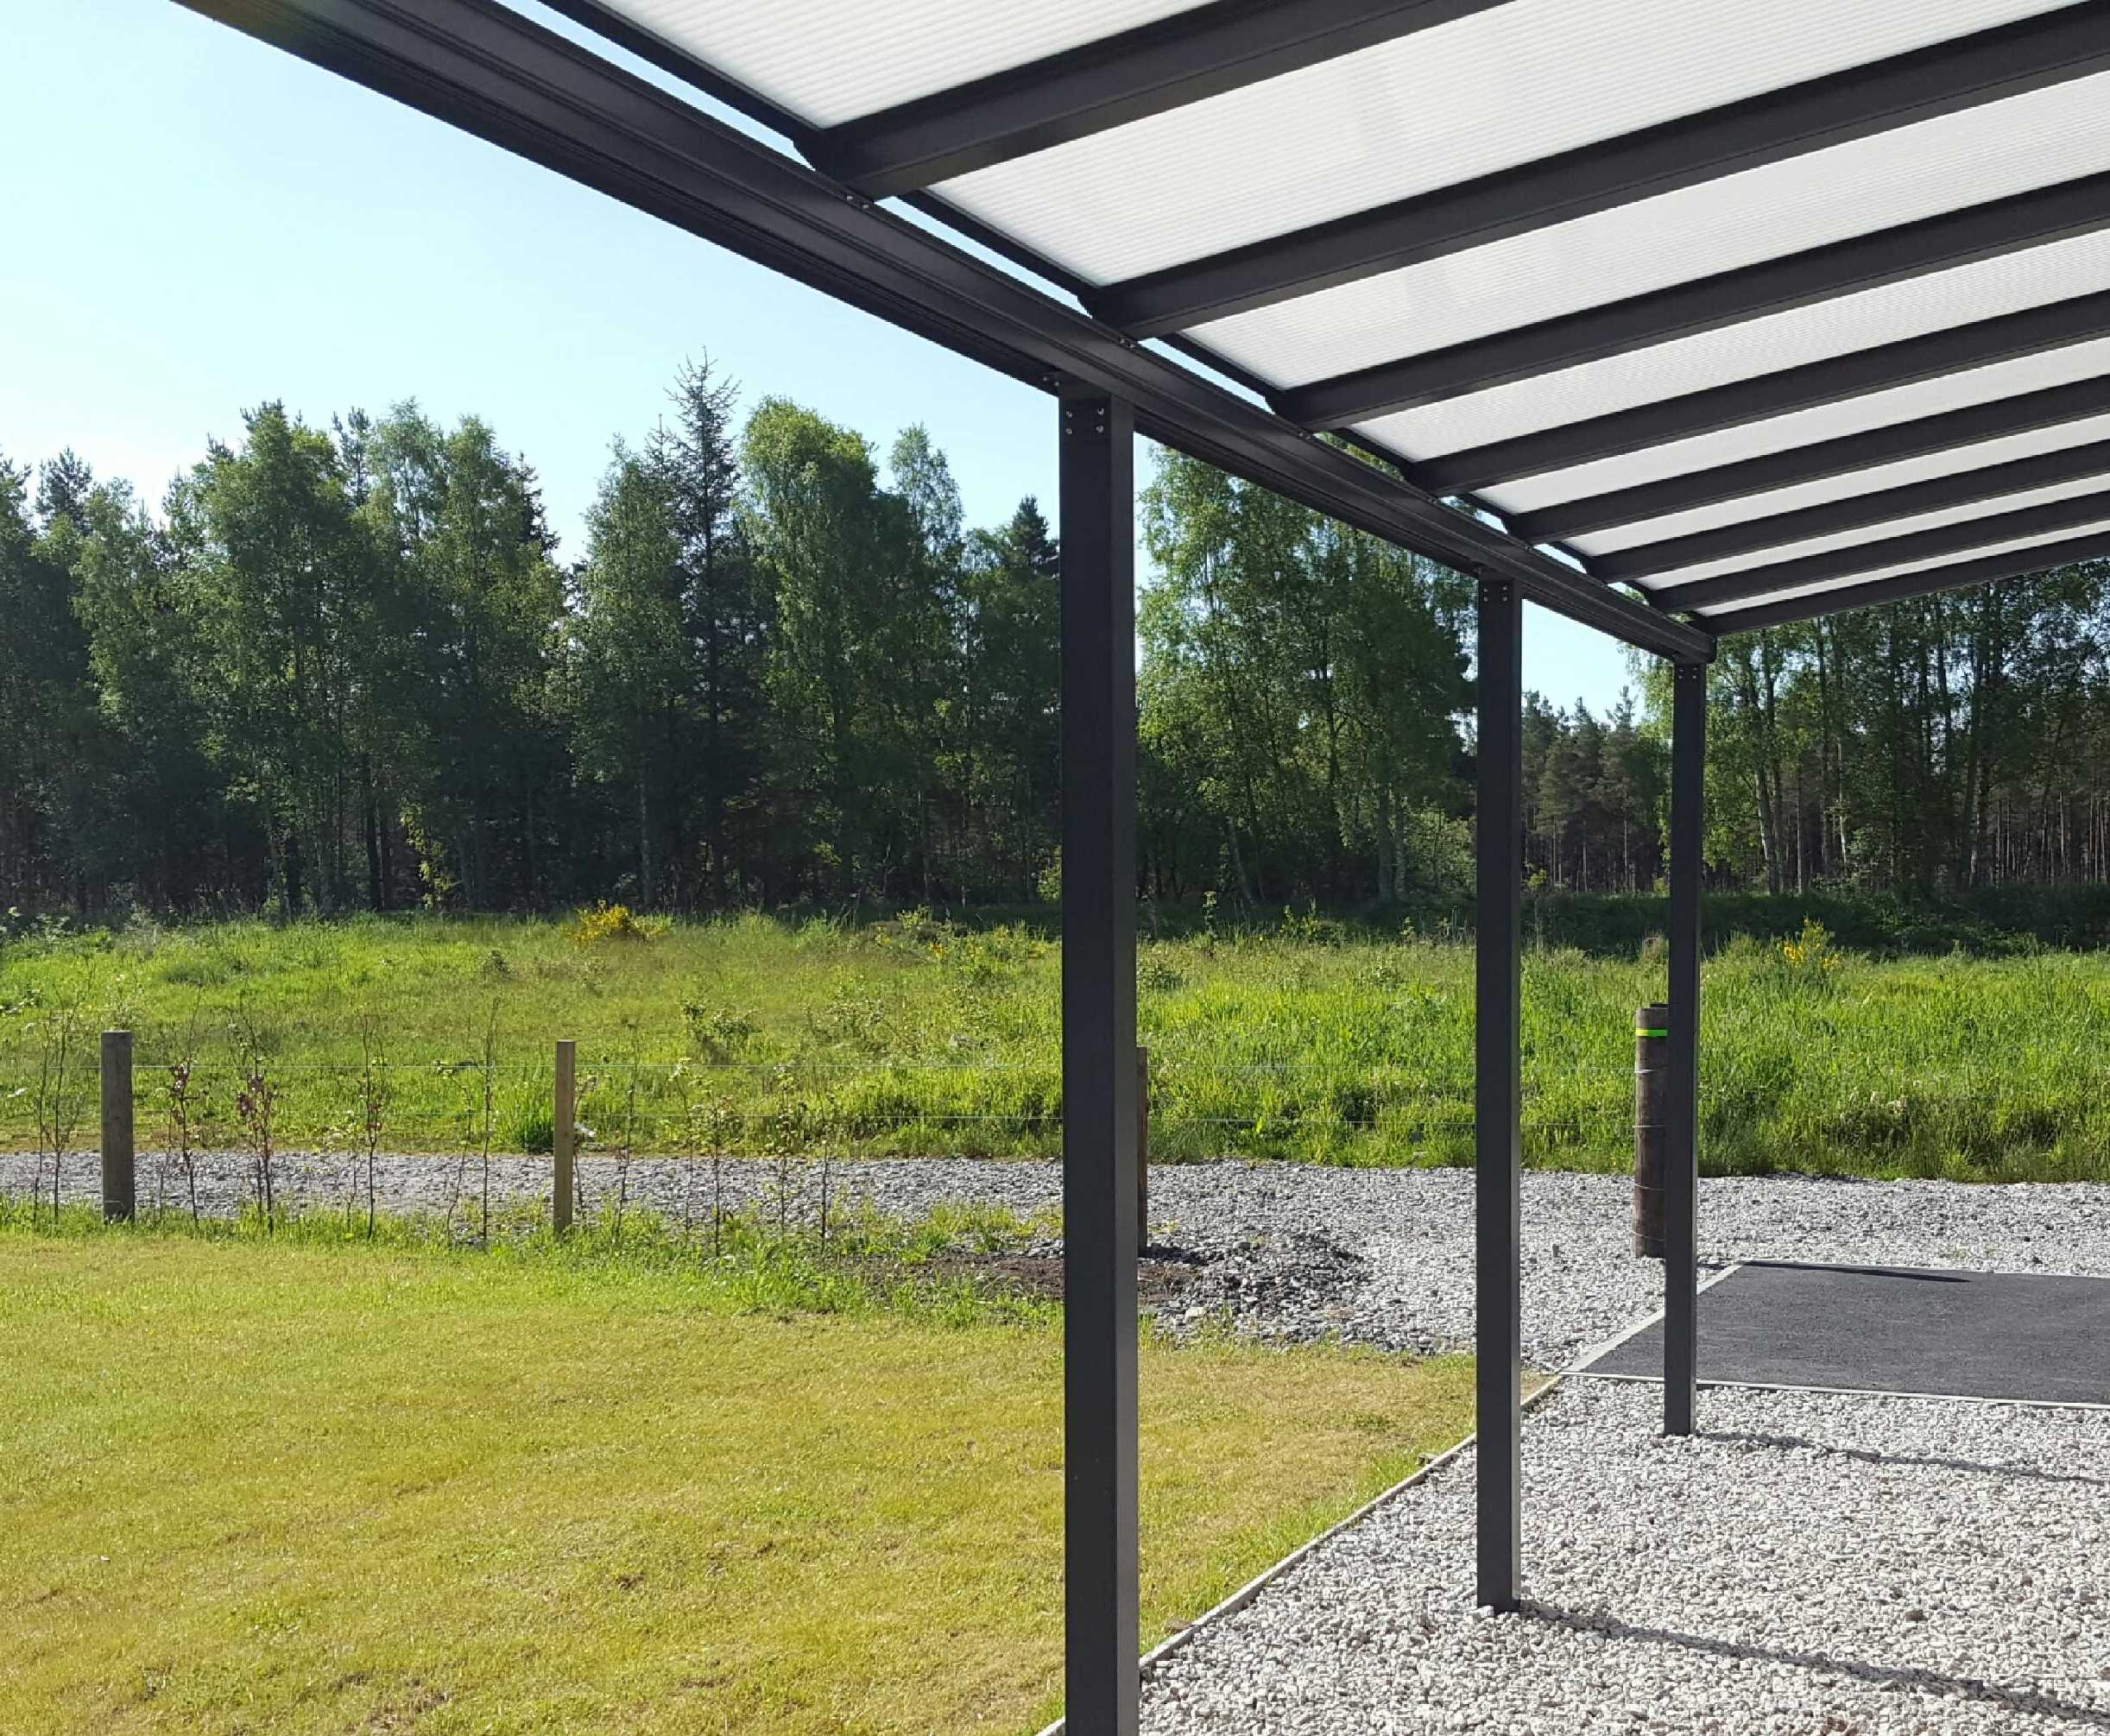 Omega Smart Lean-To Canopy, Anthracite Grey, 16mm Polycarbonate Glazing - 5.2m (W) x 2.5m (P), (3) Supporting Posts